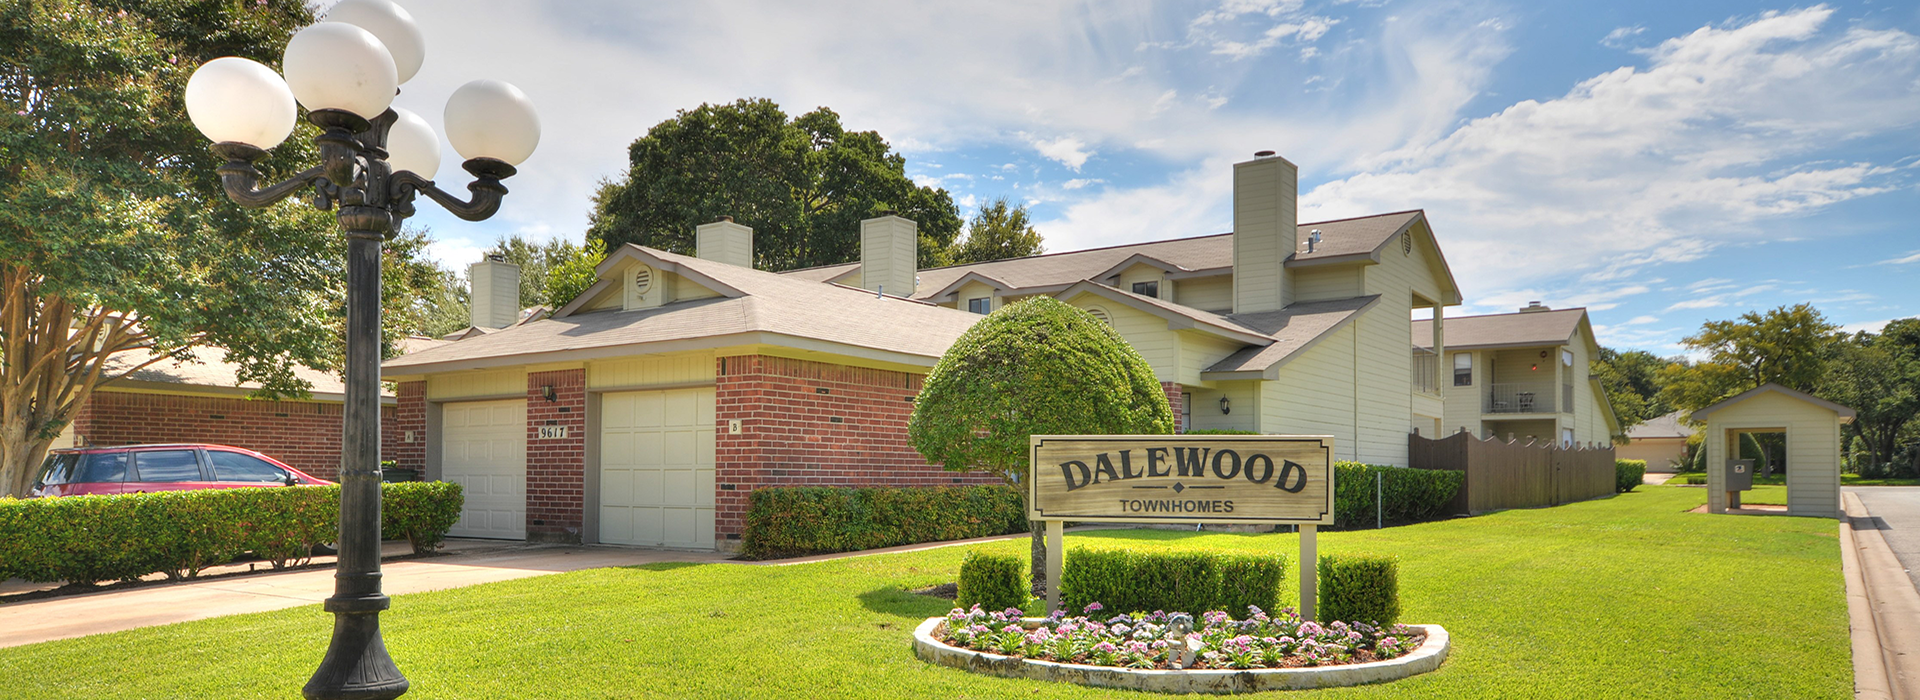 Wondrous Dalewood Townhomes Townhomes In Austin Texas Interior Design Ideas Gentotryabchikinfo